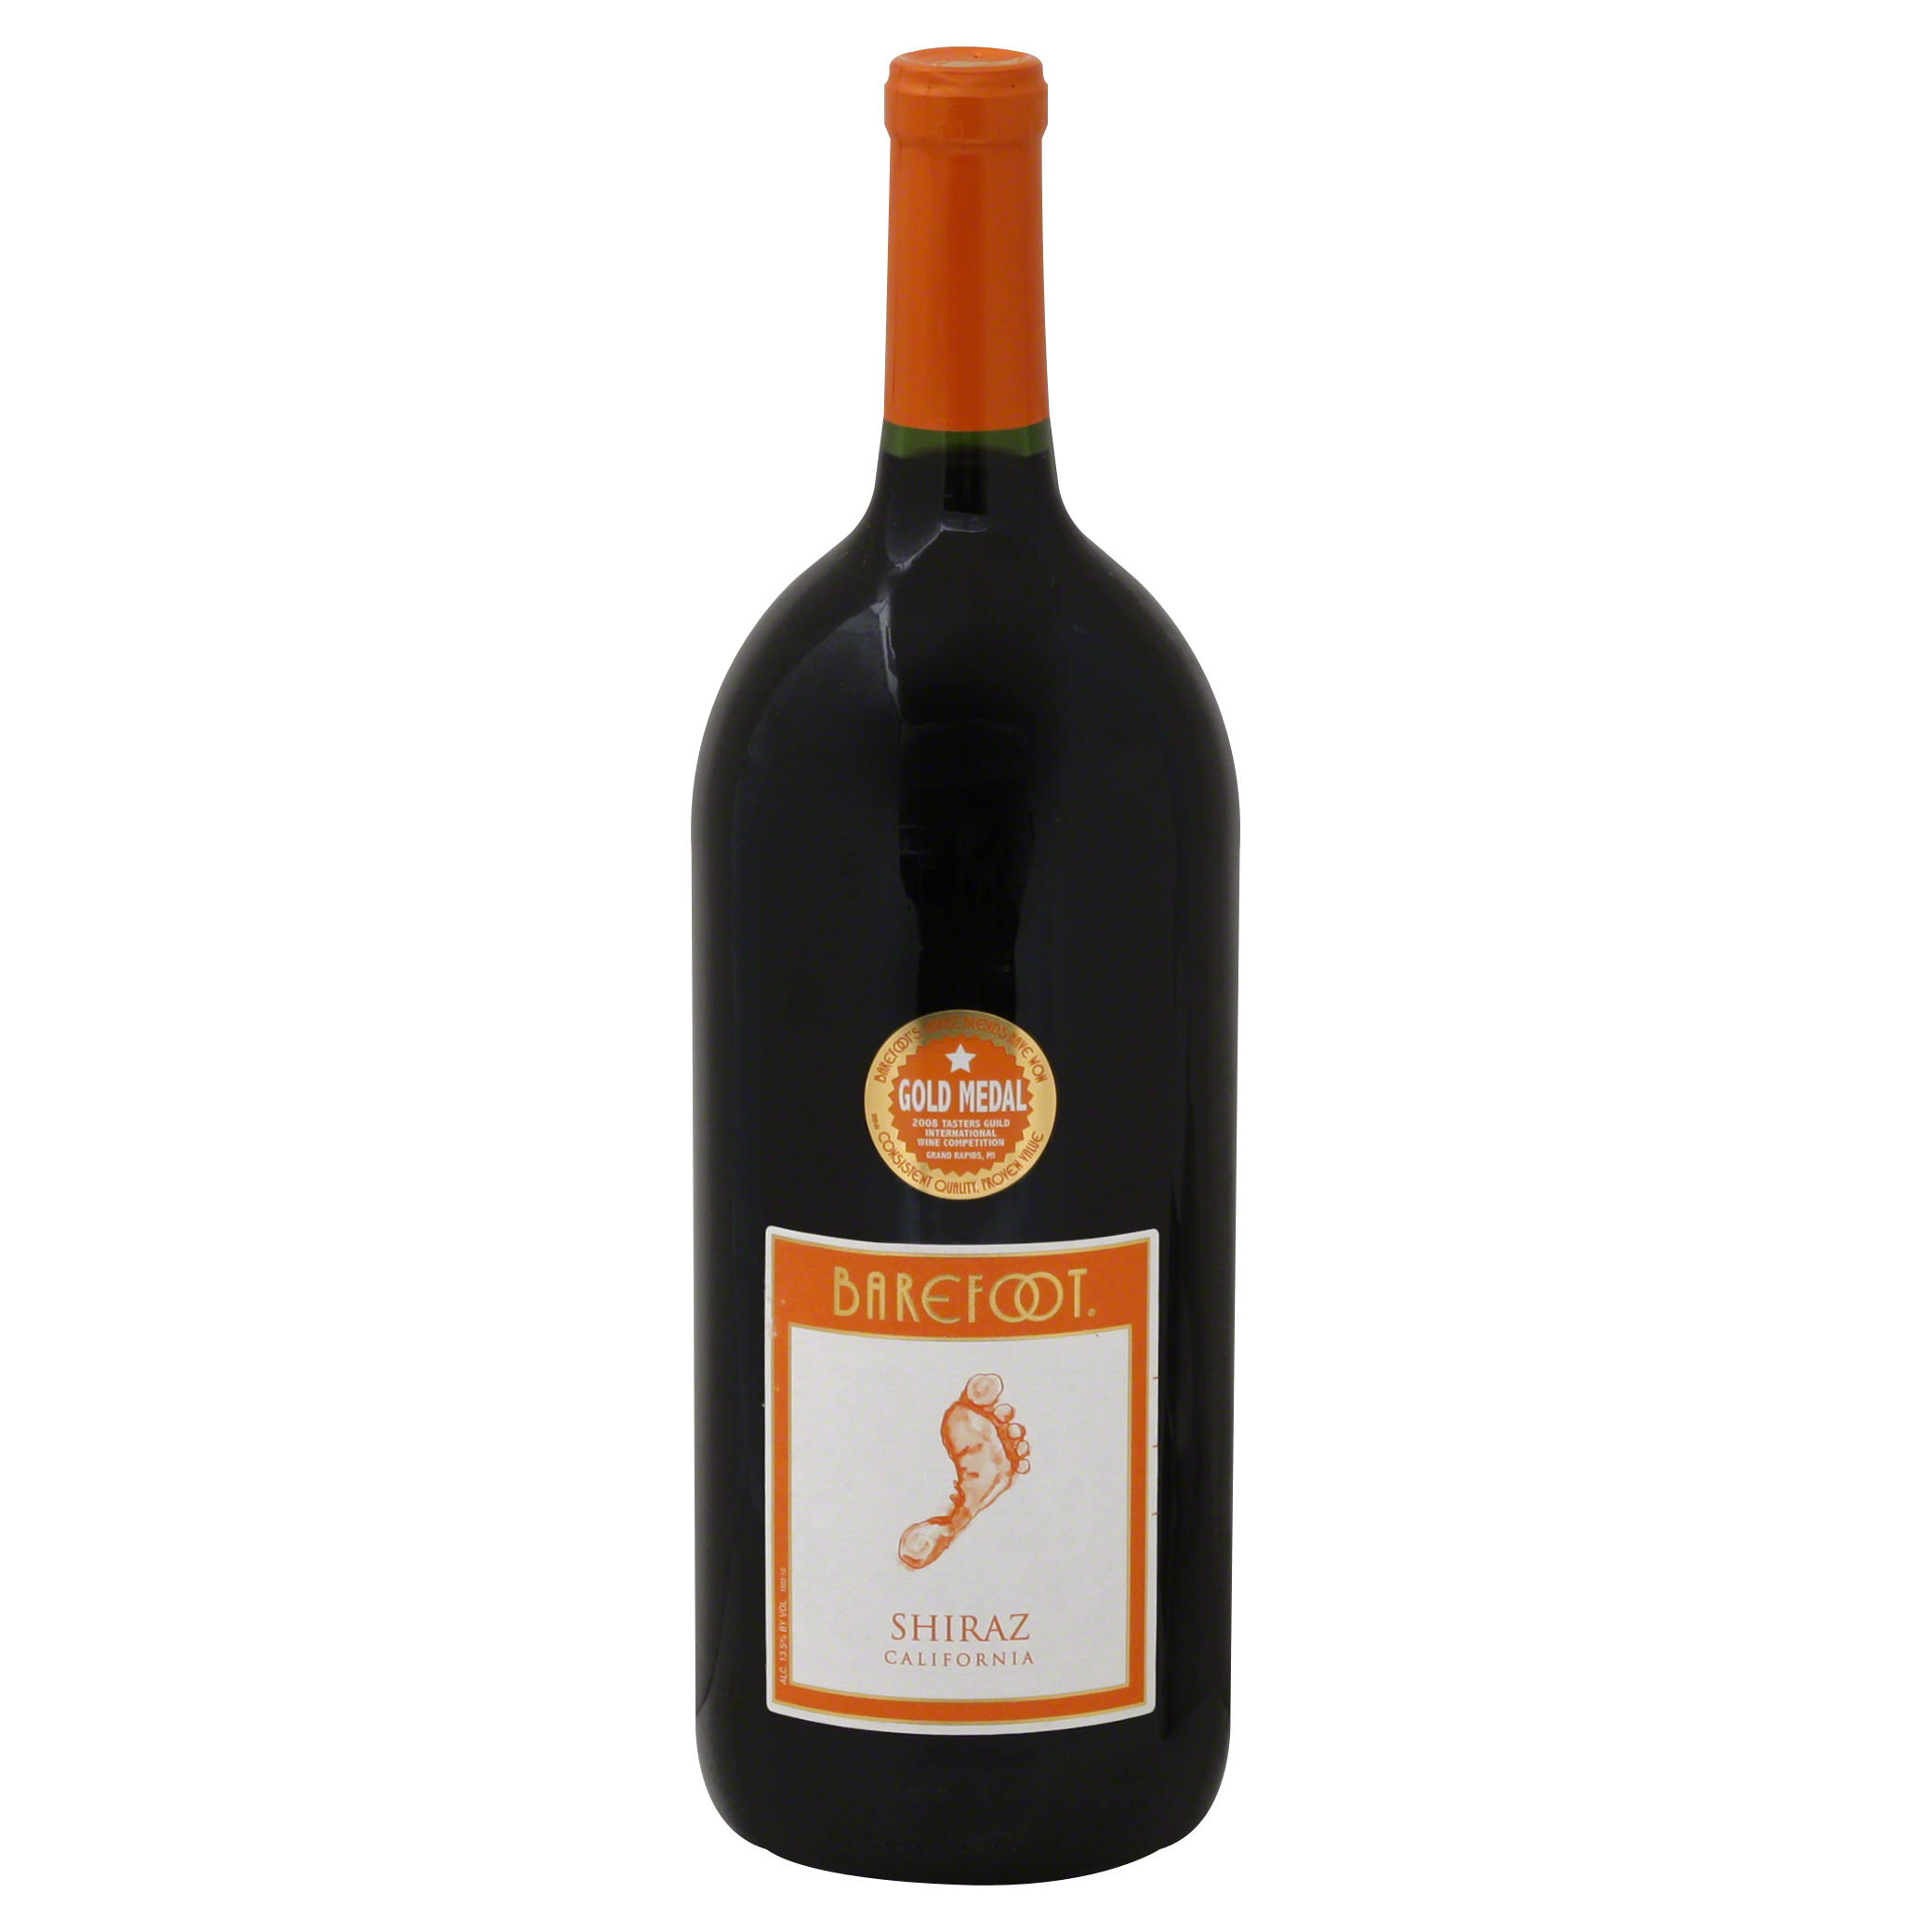 Barefoot Shiraz California - 1.5L